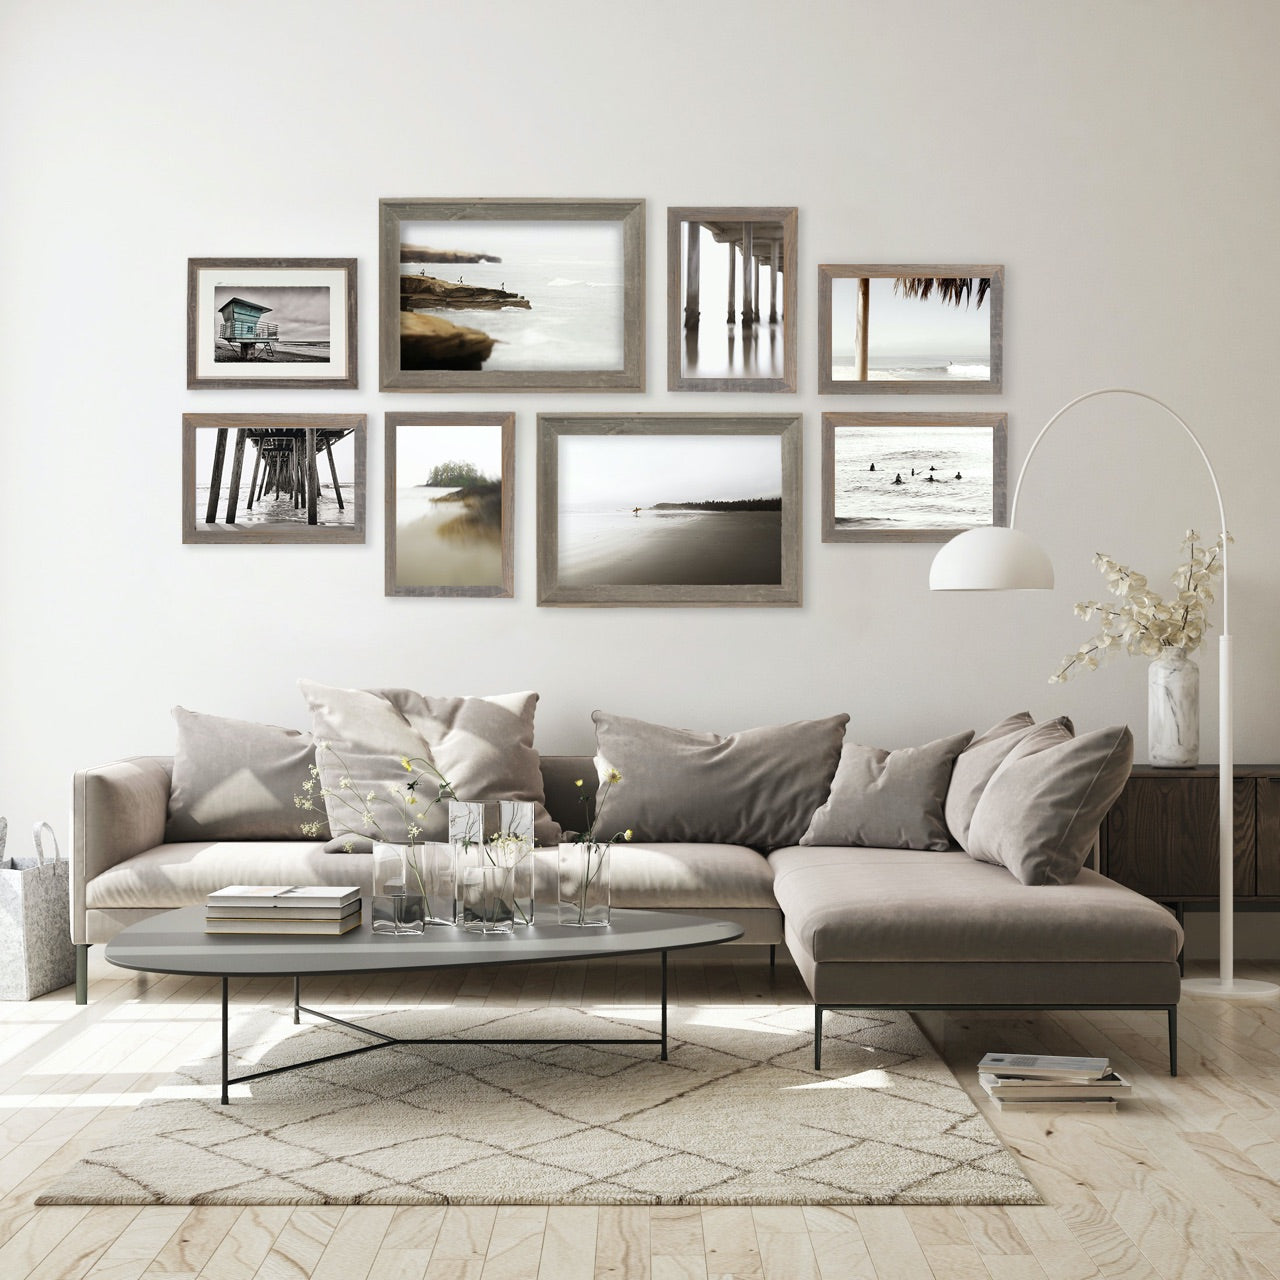 Living Room Gallery Wall with black and white framed prints